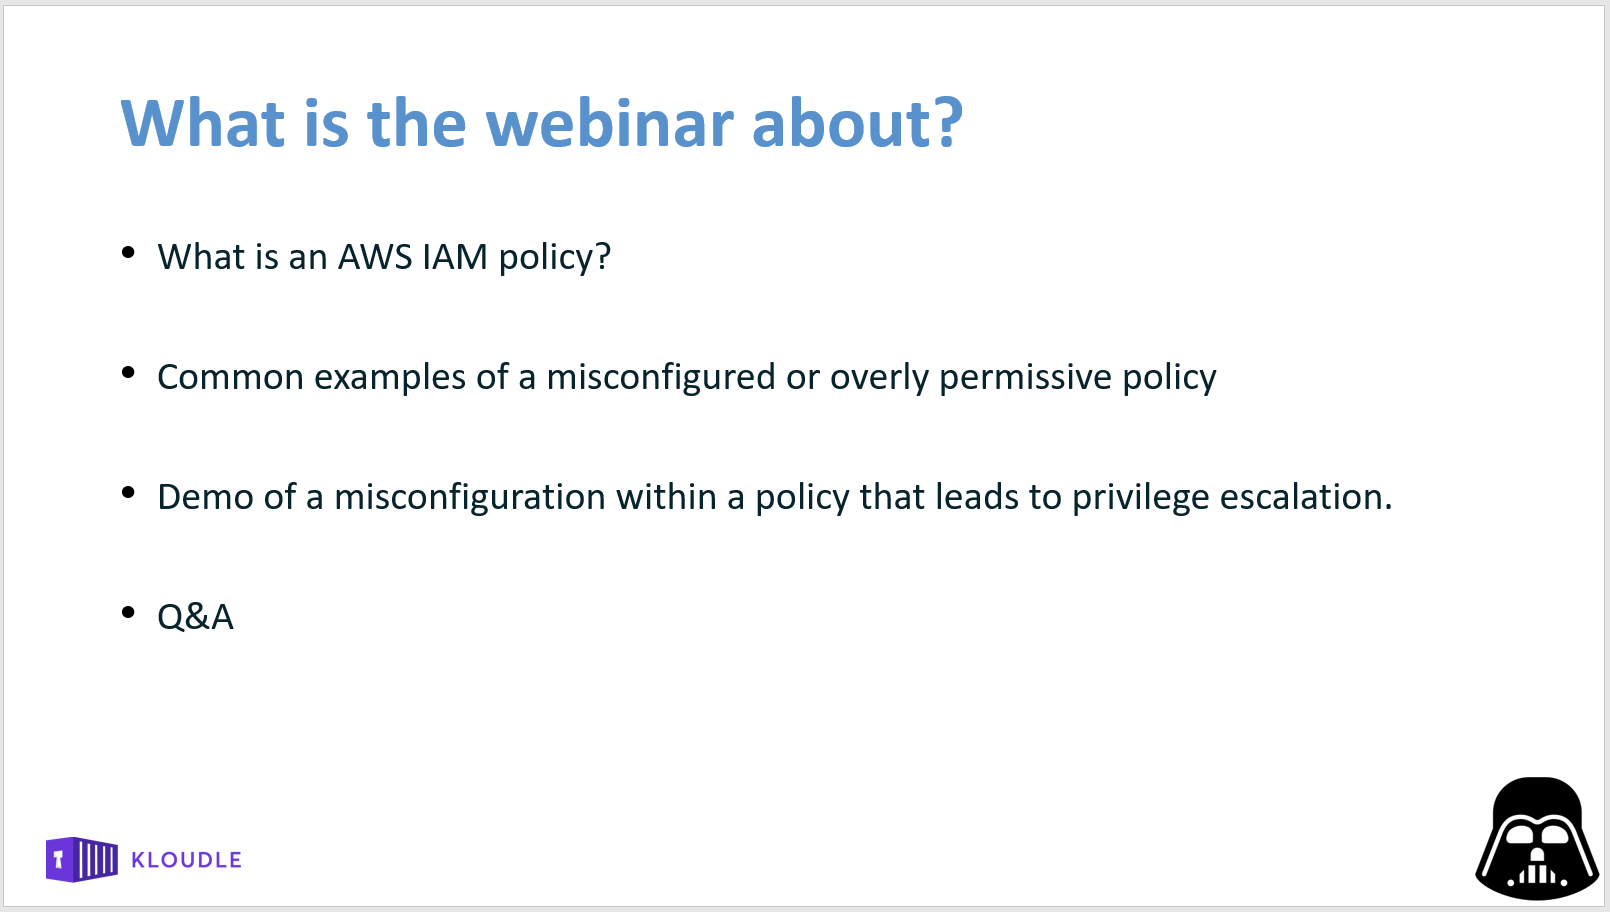 what is the webinar about